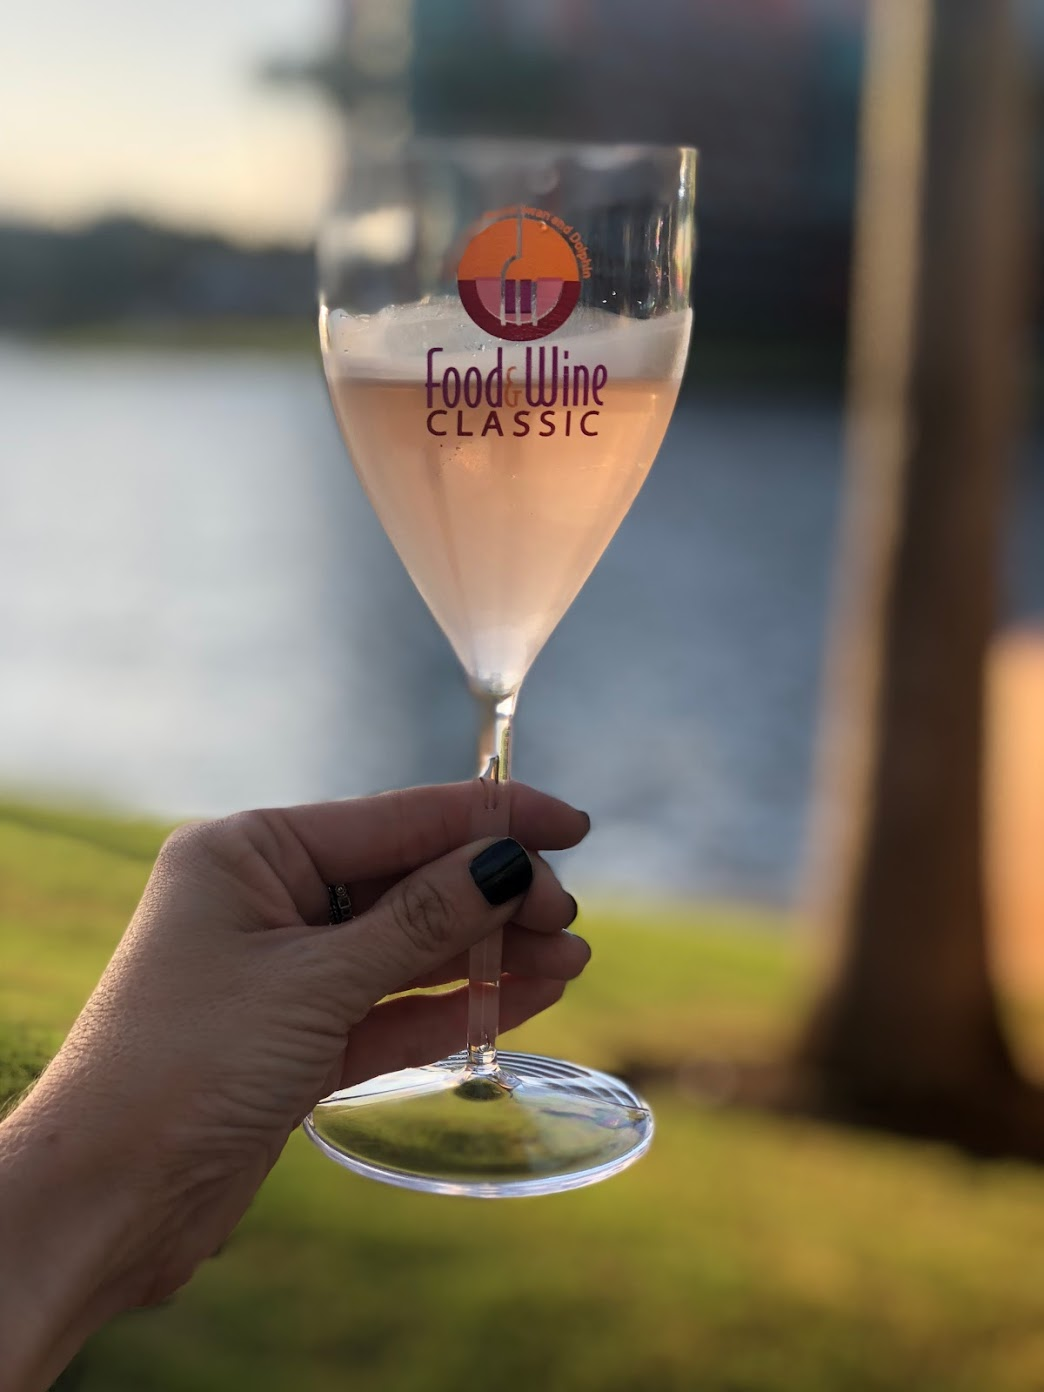 2018 Swan and Dolphin Food and Wine Classic